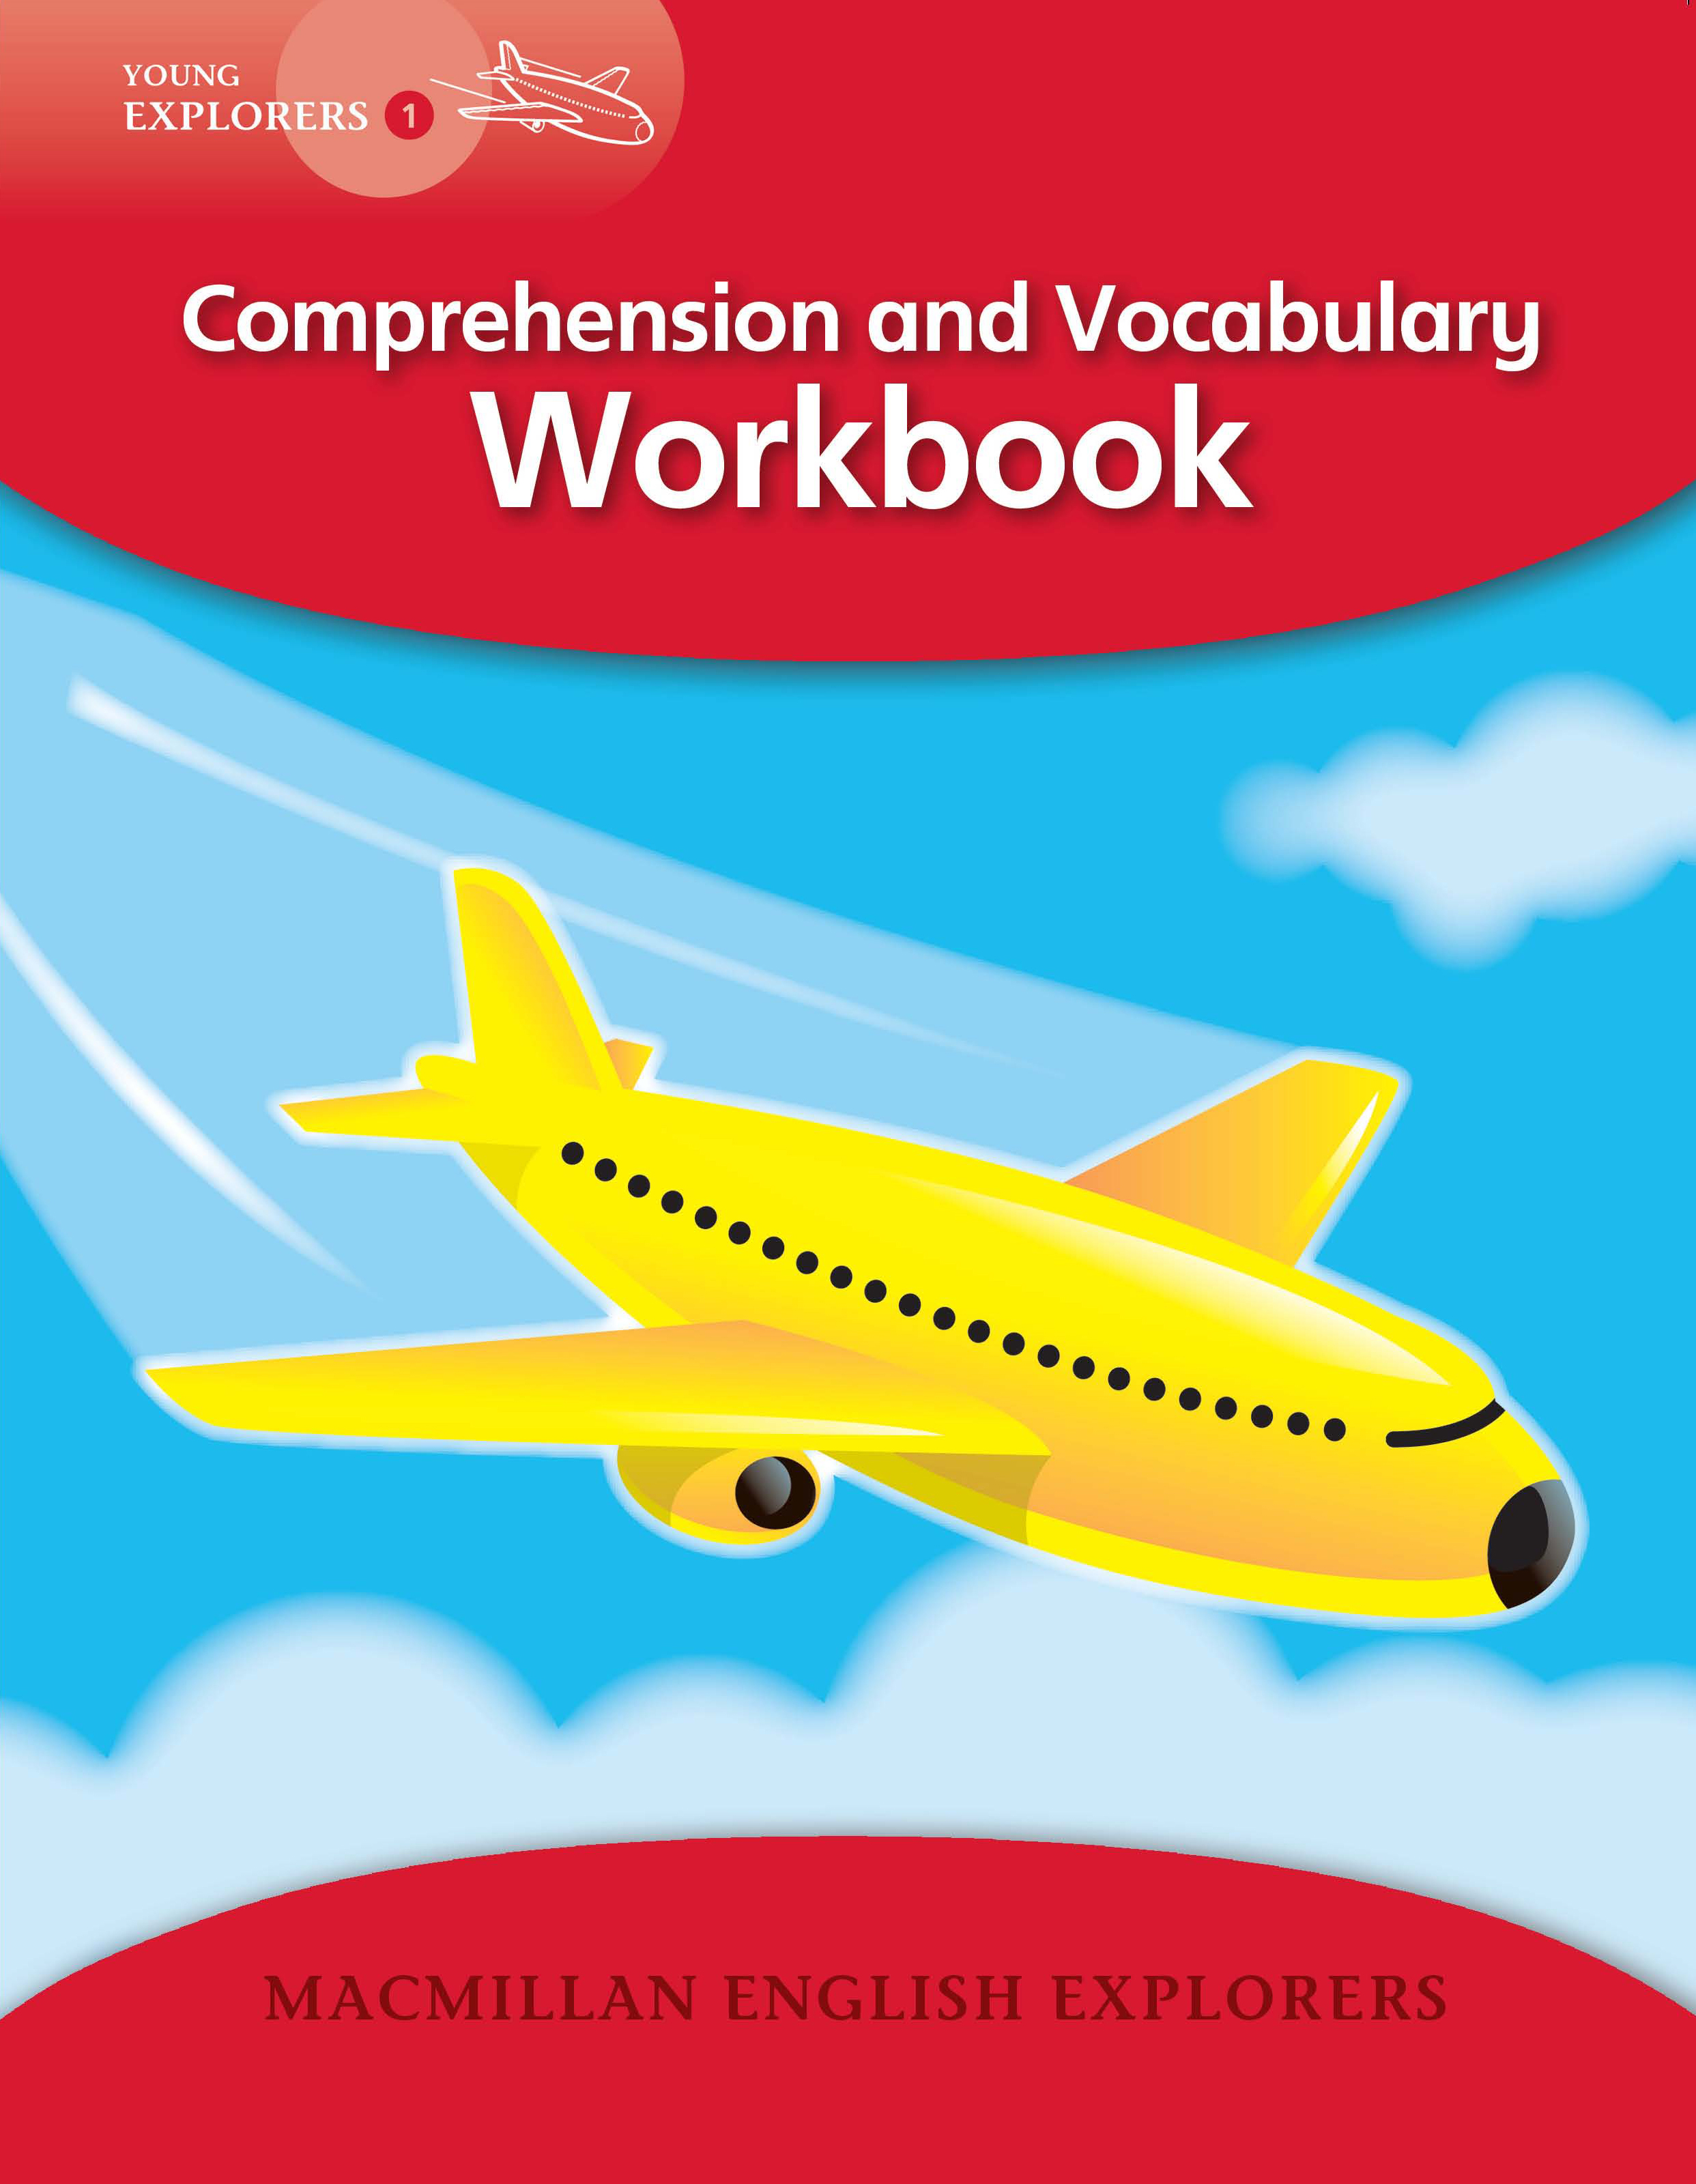 Young Explorers 1: Comprehension Workbook